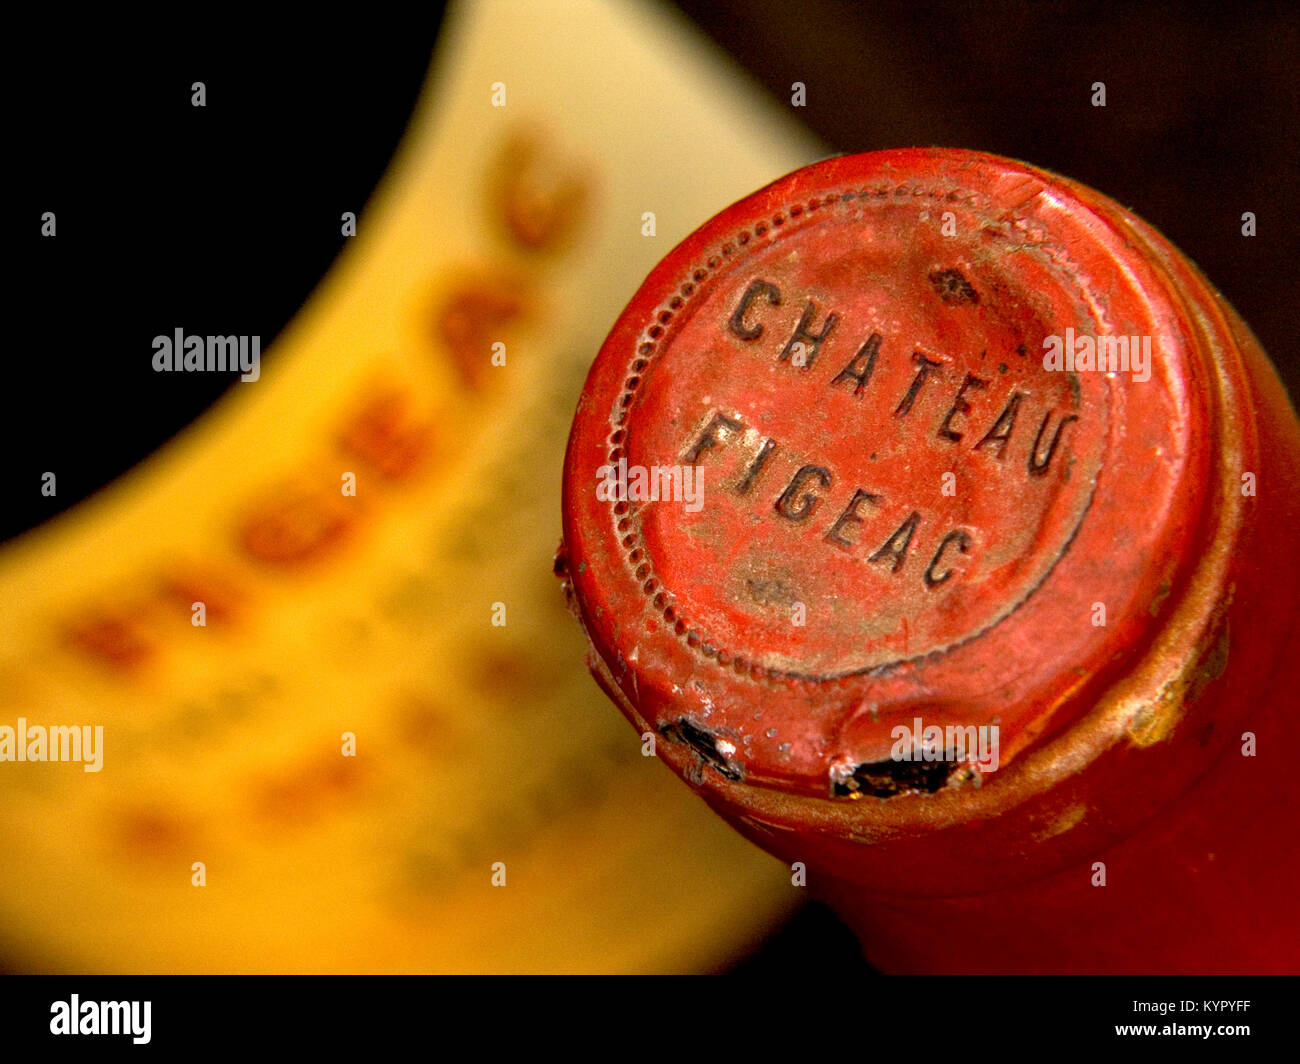 Foil capsule encapsulated bottle top 1970's Chateau Figeac in poor damaged condition, allowing possibility of 'corking' - Stock Image